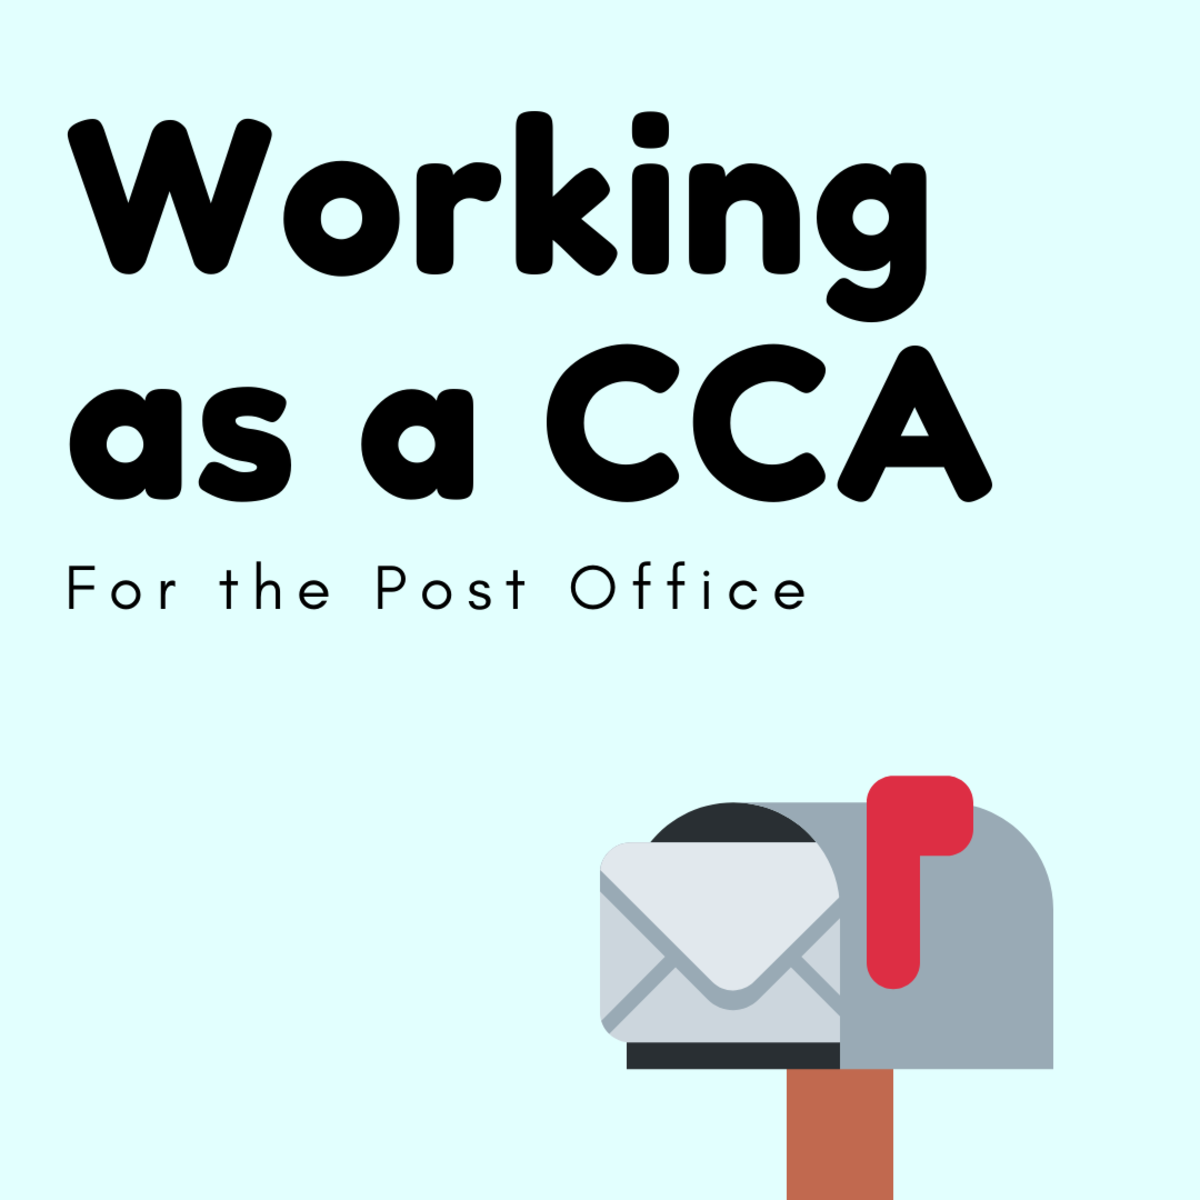 Working as a CCA at the Post Office